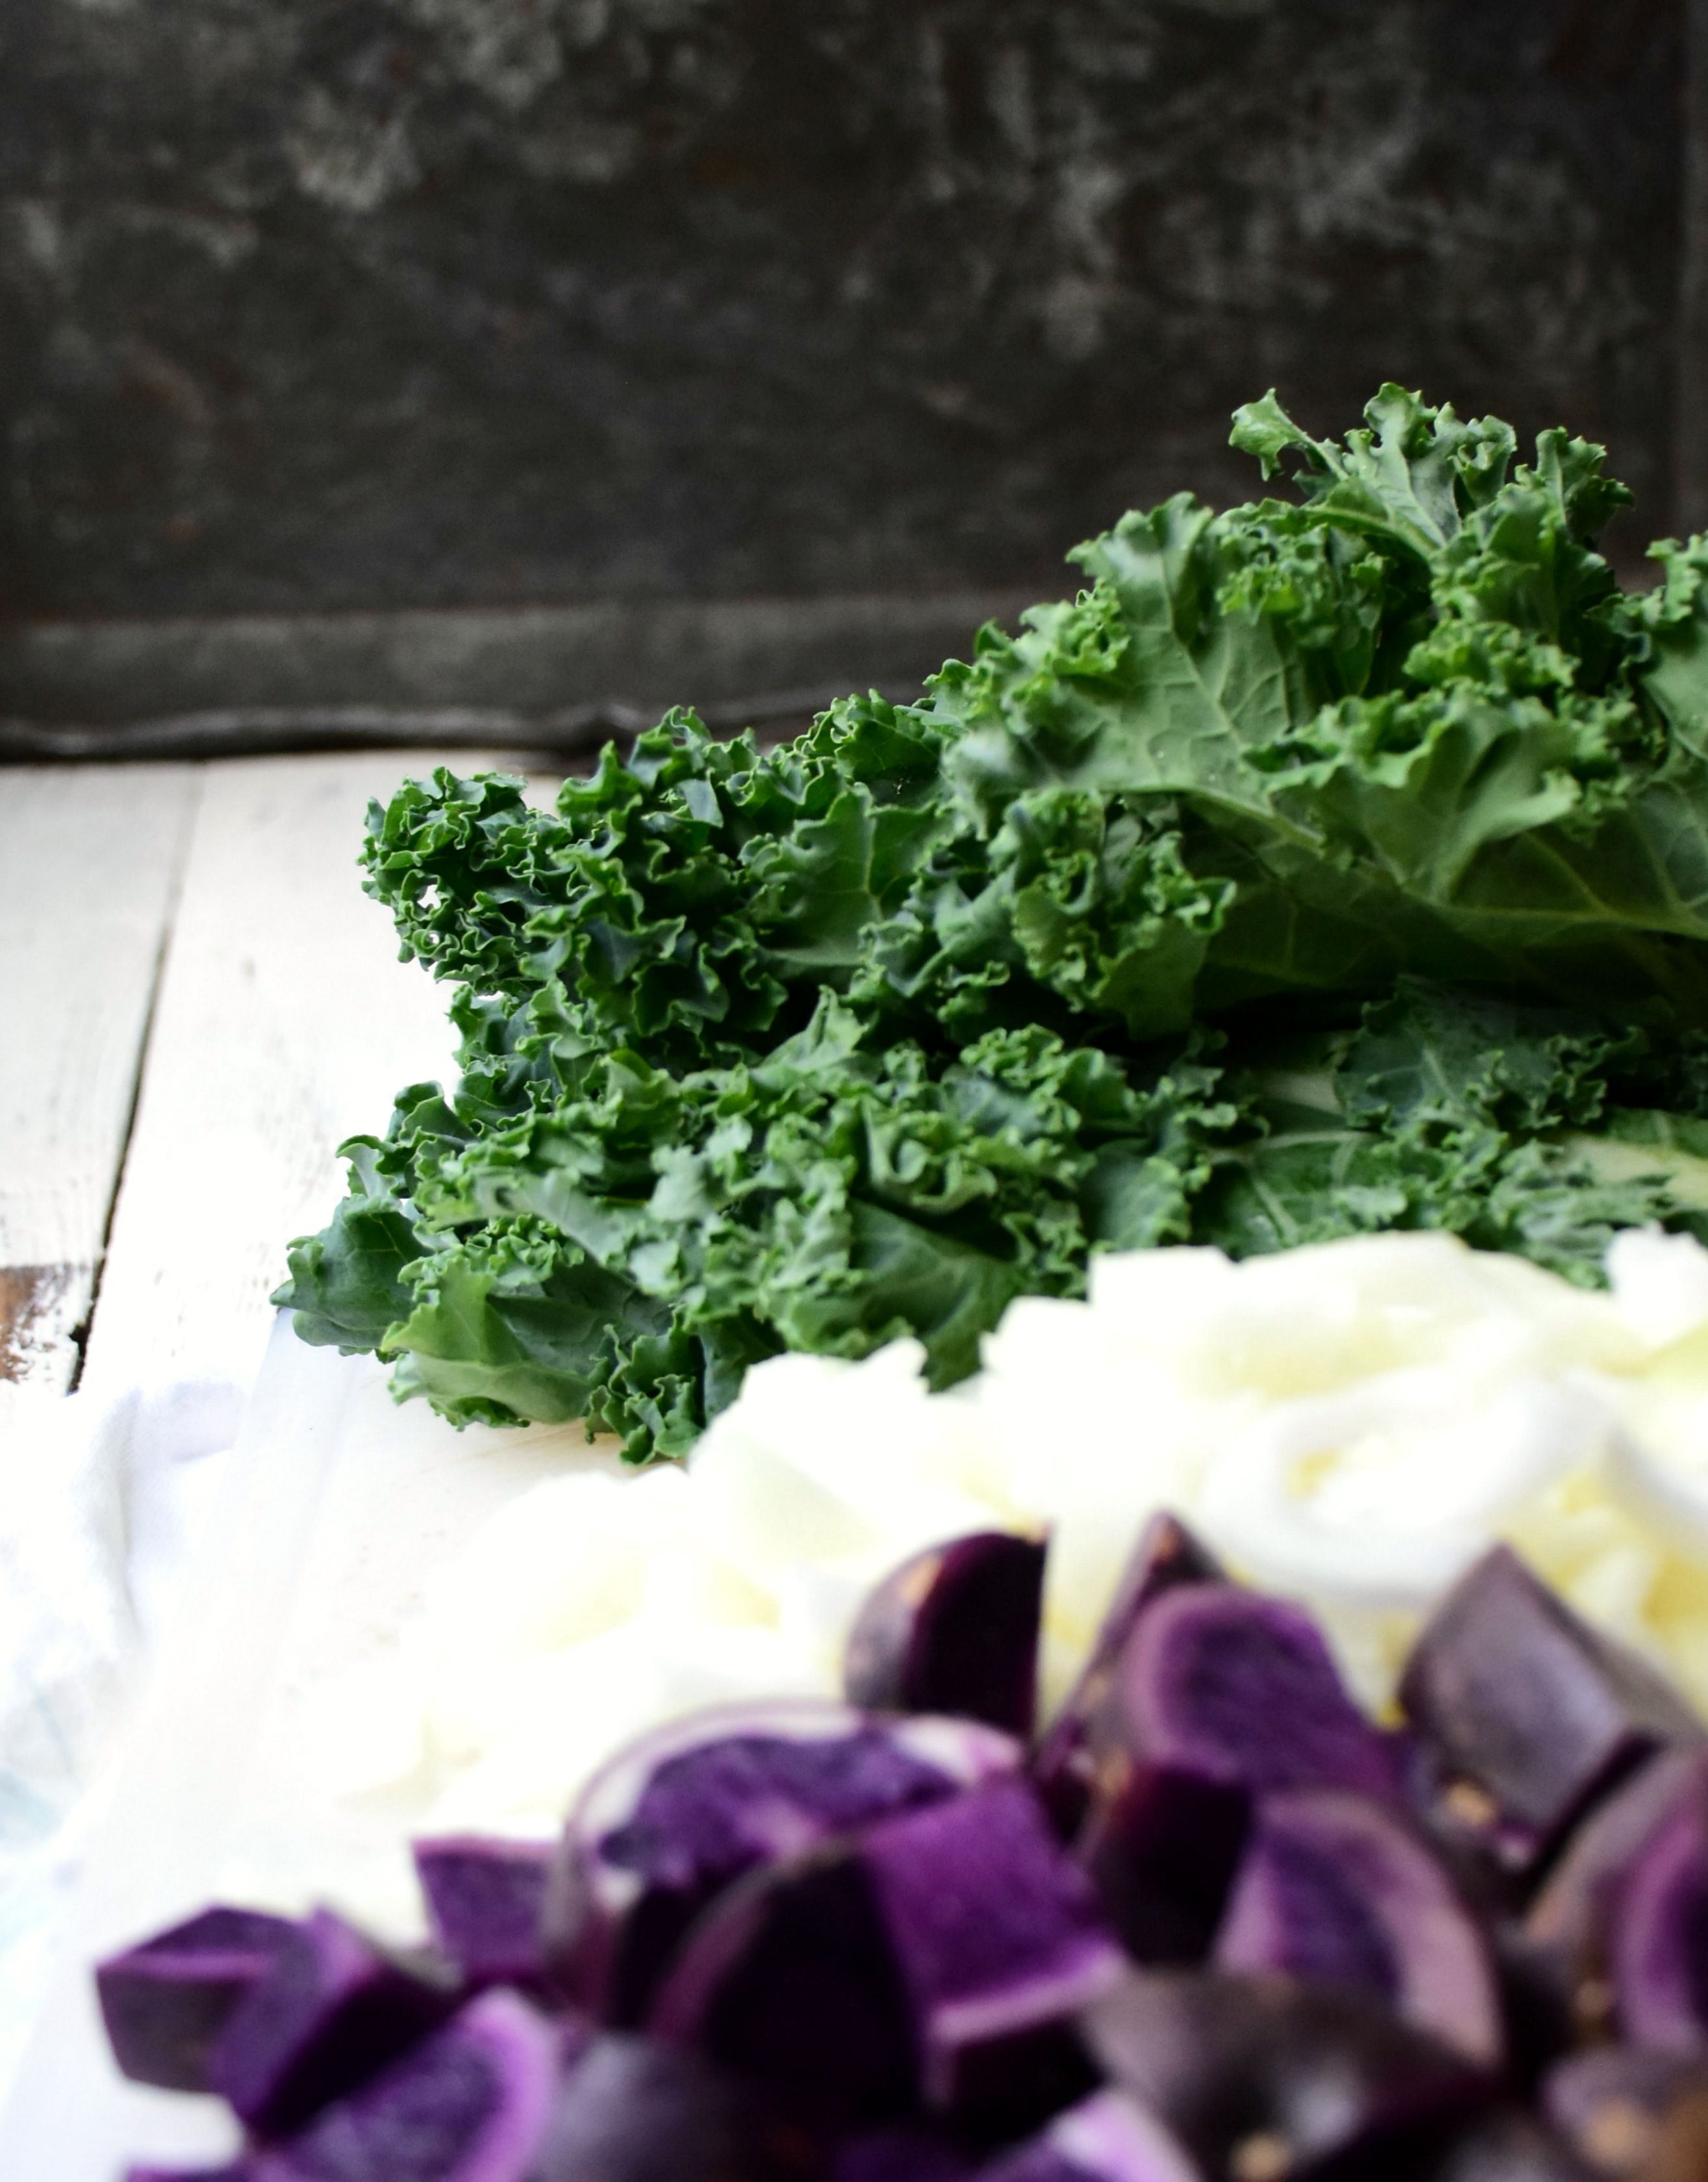 Blue apron kale - Beyond The Ingredients Which I Proudly Photographed Like A Fool With My Studio Window Open The Neighbors Staring In With The Ut Most Confusion